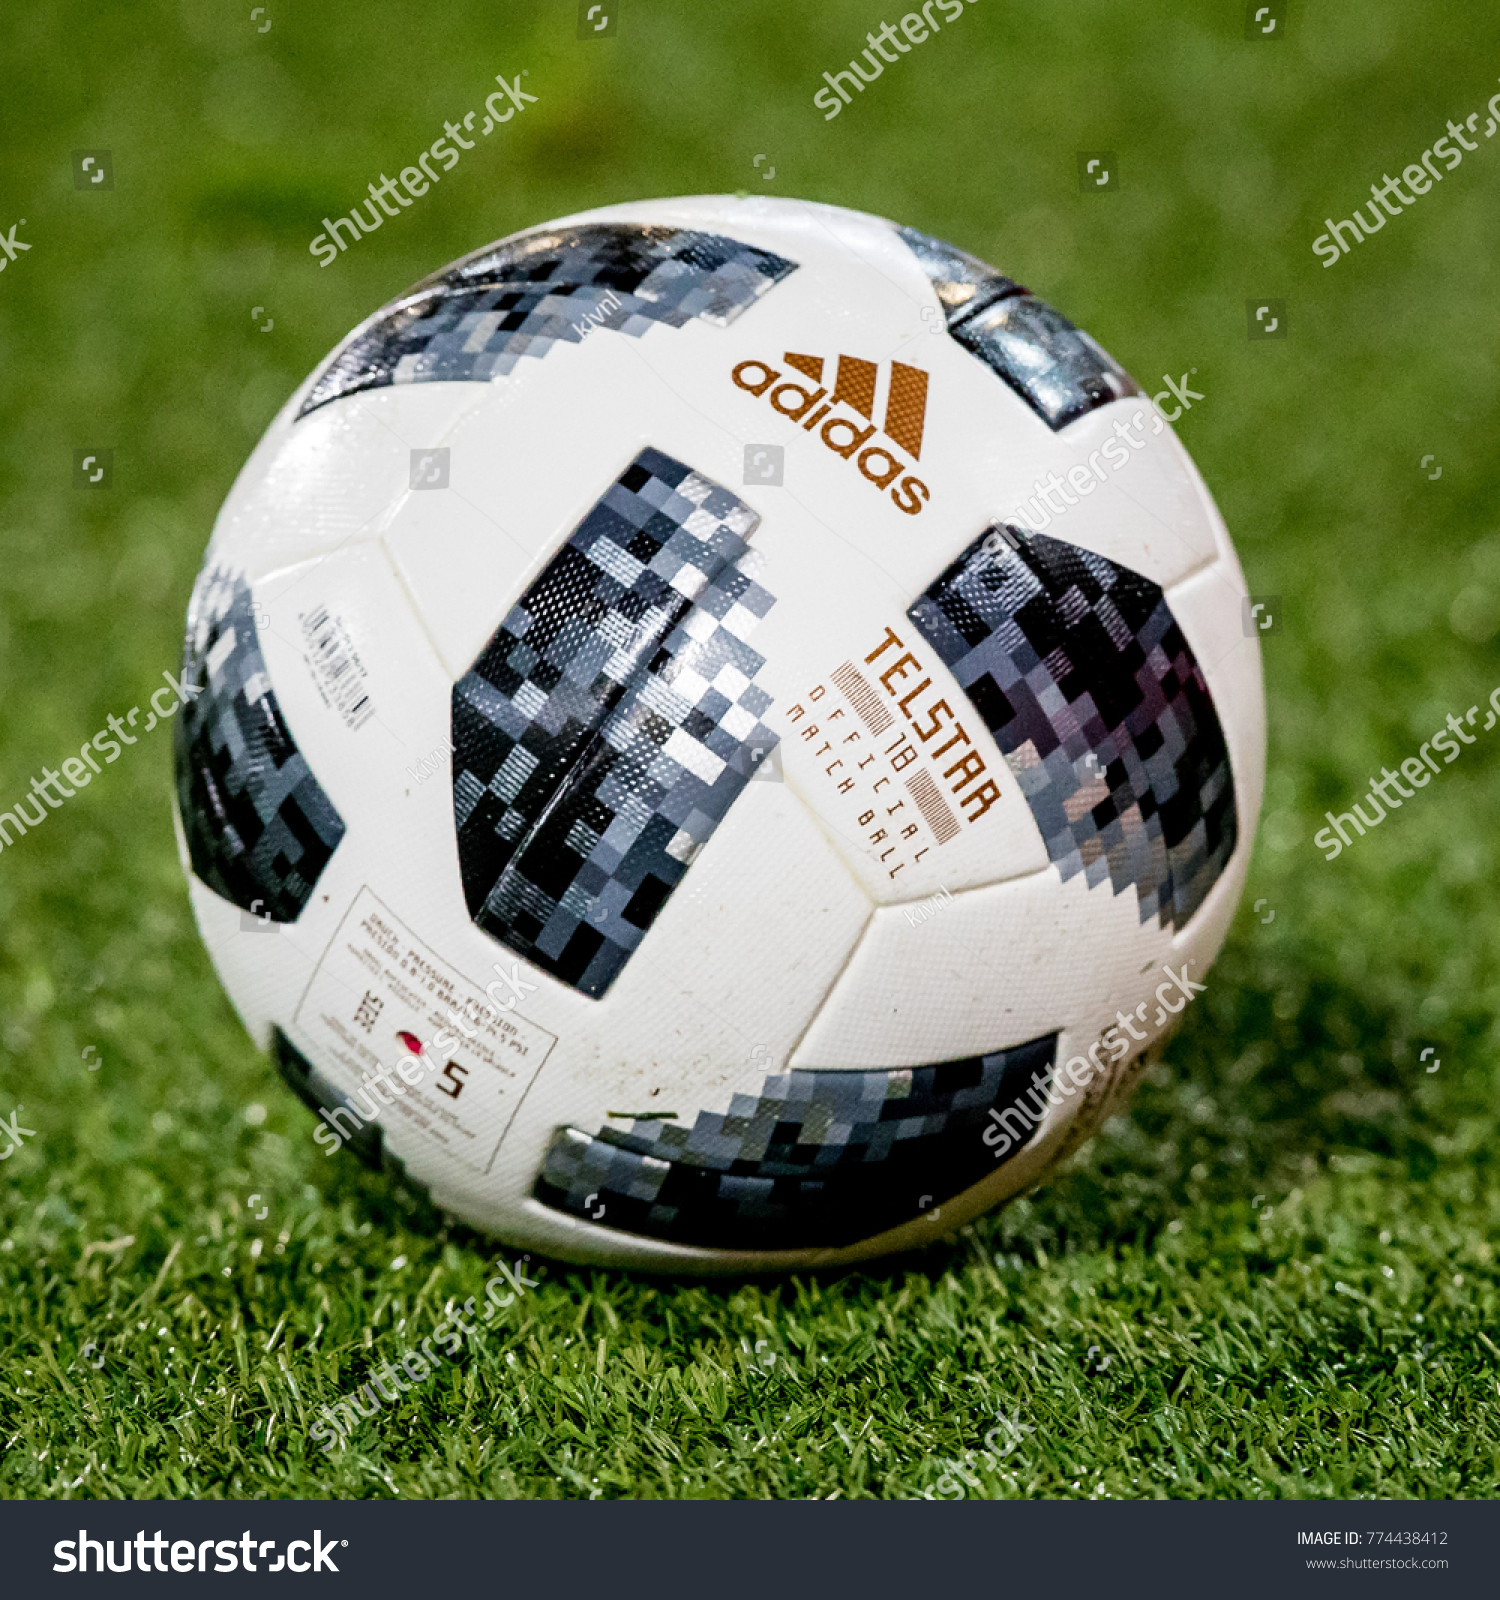 Download Football Ball World Cup 2018 - stock-photo-netherlands-rotterdam-december-th-official-russia-world-cup-football-ball-the-774438412  Snapshot_801664 .jpg